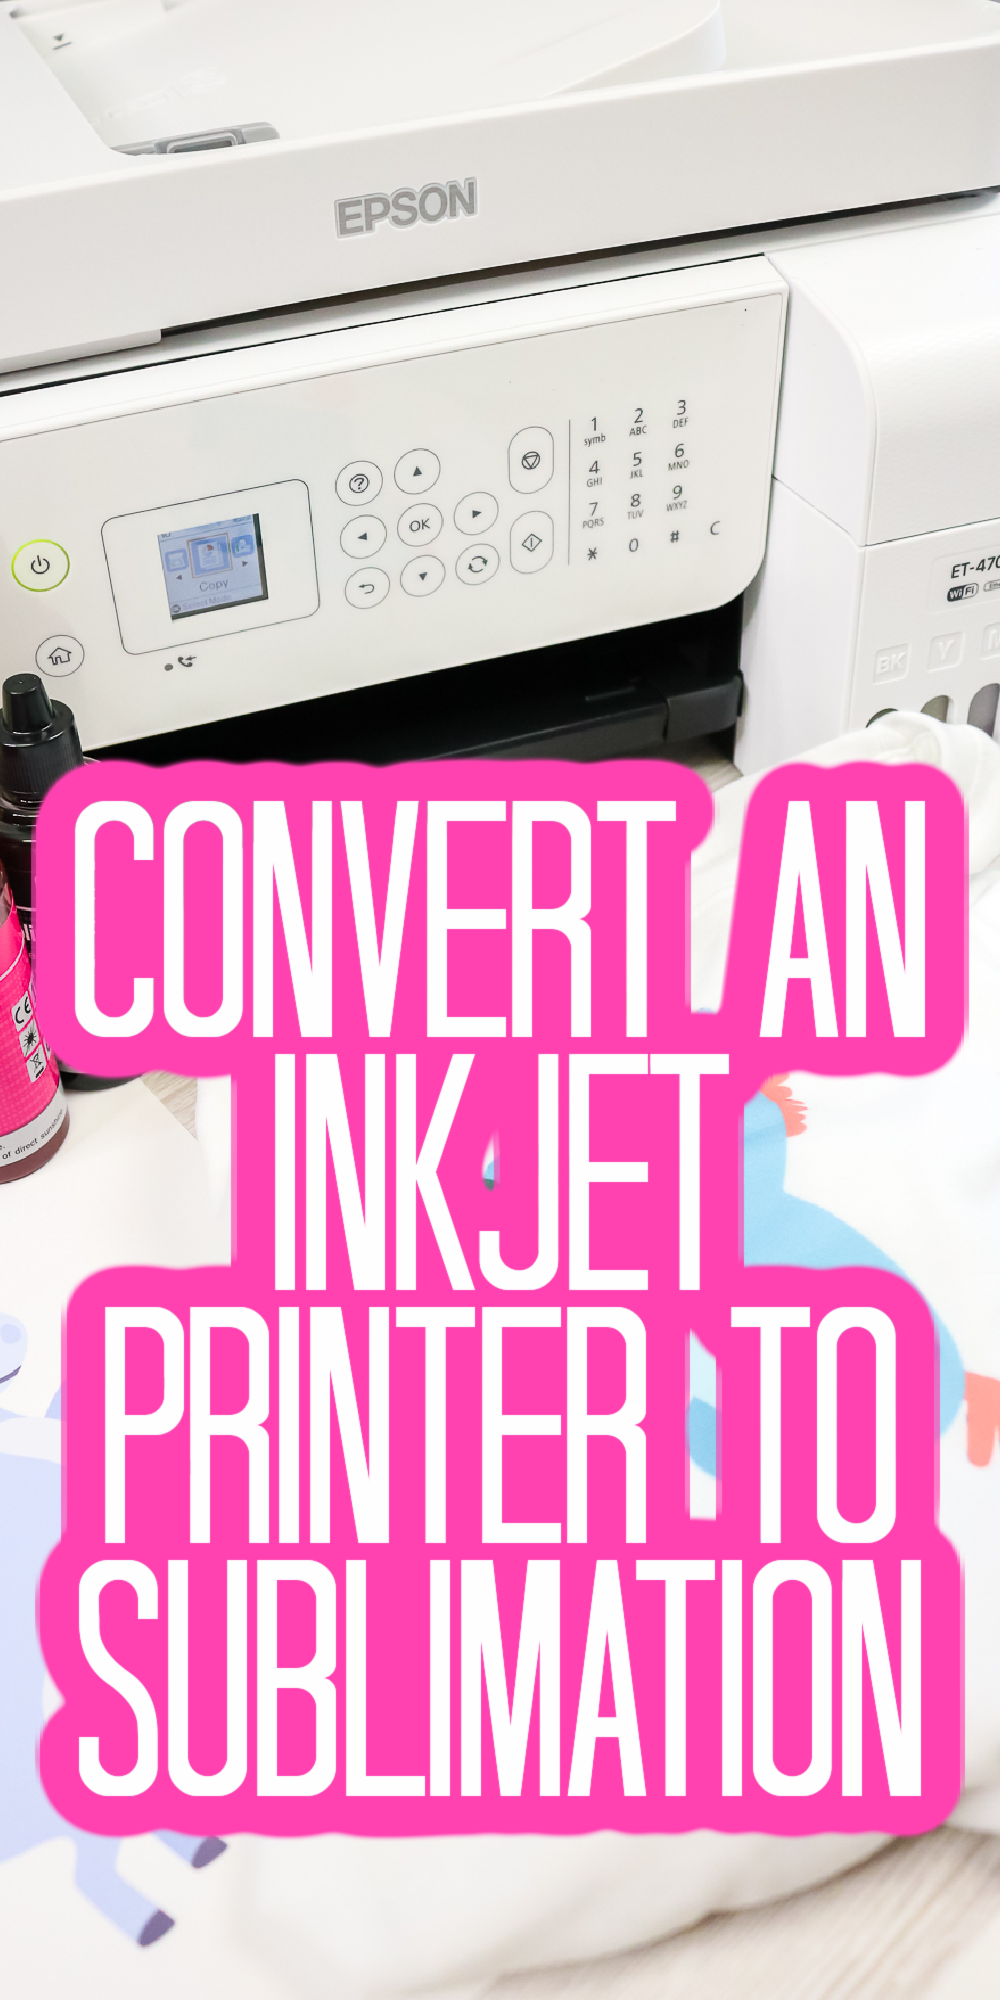 converting inkjet printer to sublimation